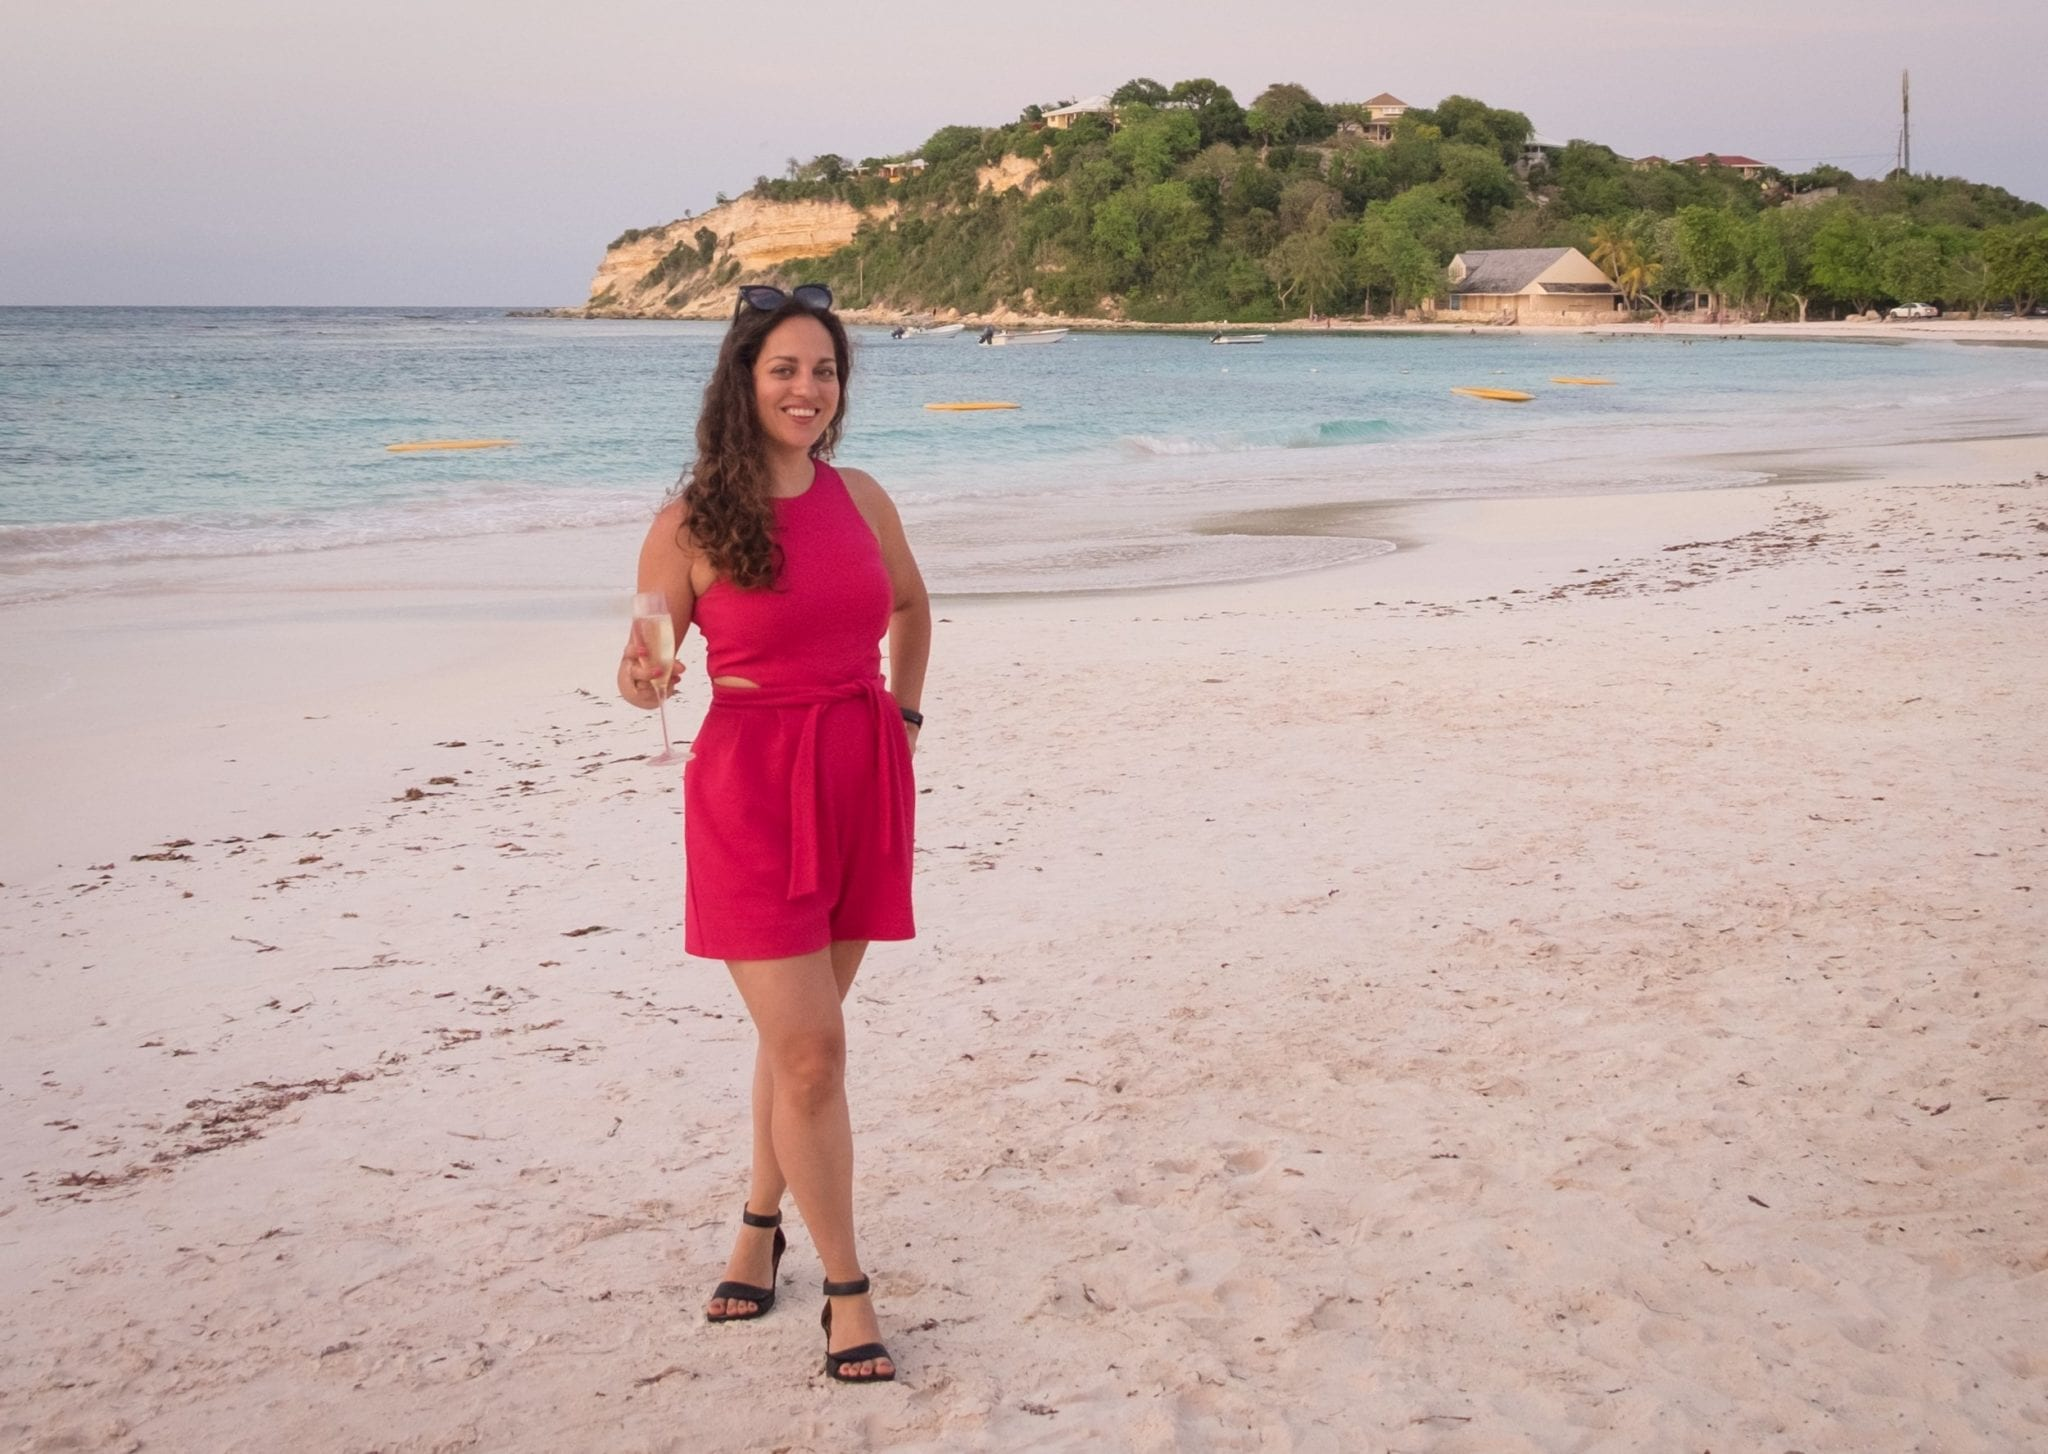 Kate wearing a hot pink romper and holding a glass of champagne, standing on a pinkish-white beach at sunset.